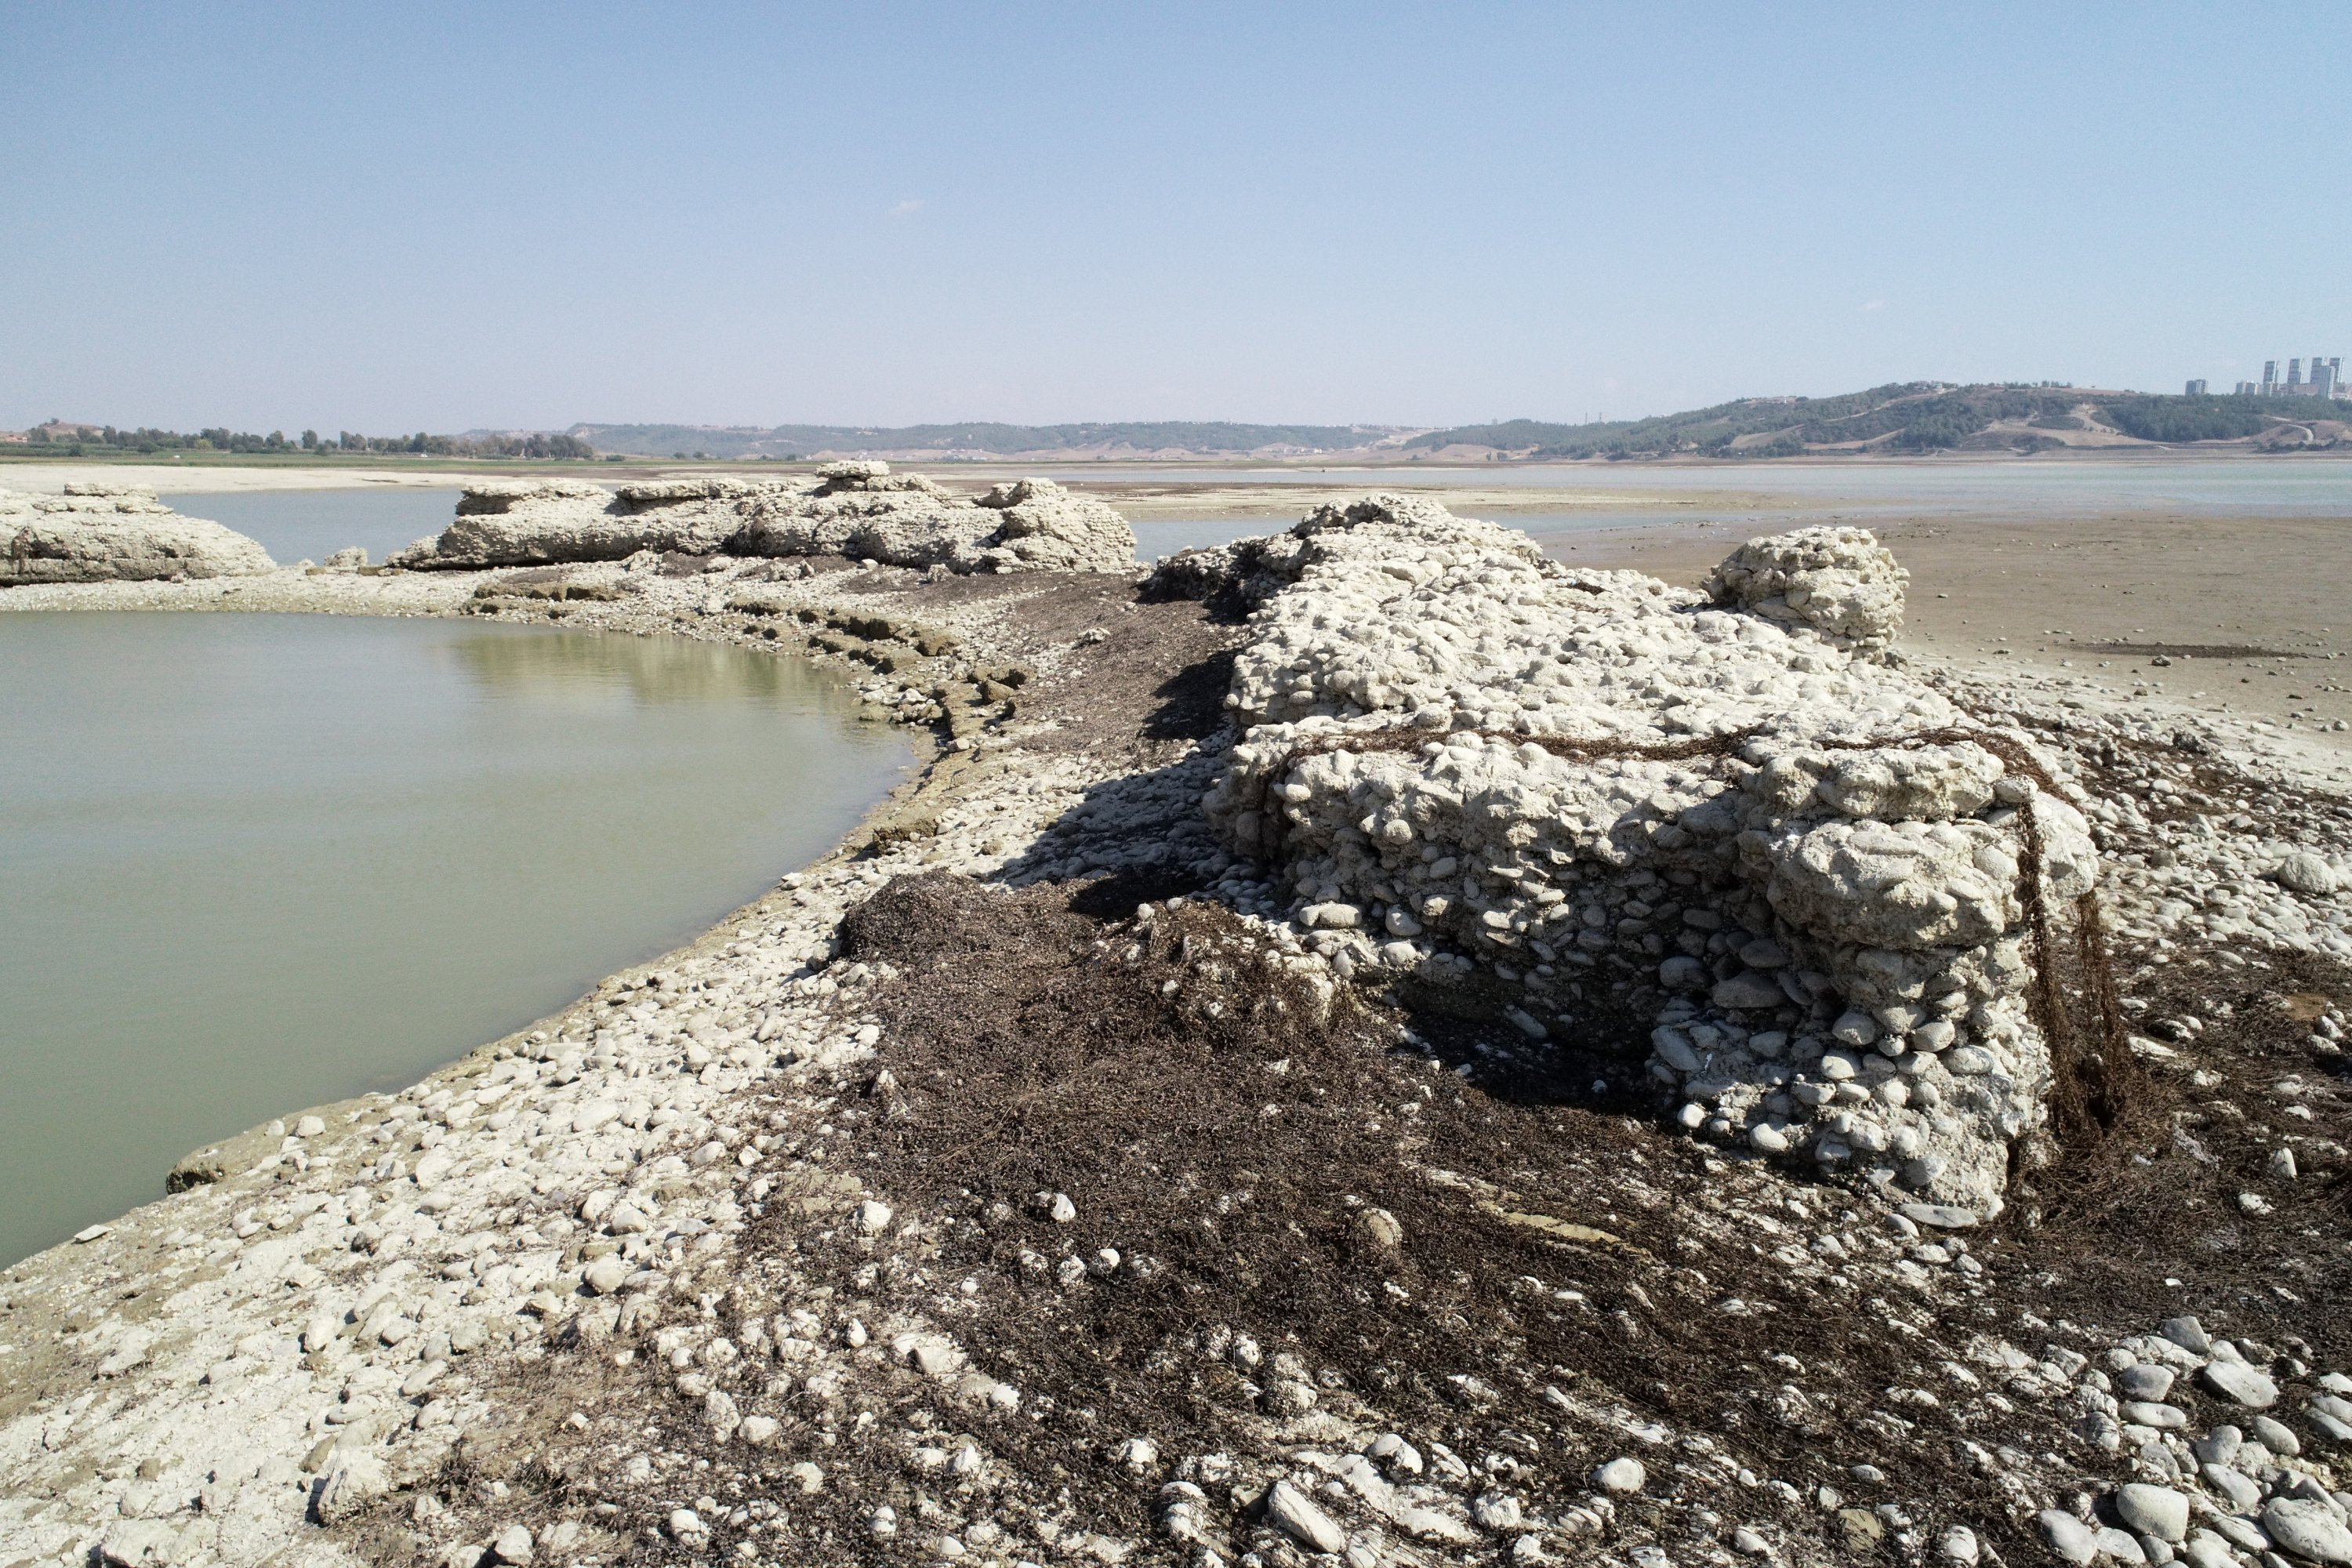 The ancient city, which dates back to B.C. 58-A.D. 29, was flooded by the Seyhan Dam Lake in 1955, Adana, Turkey. (AA Photo)